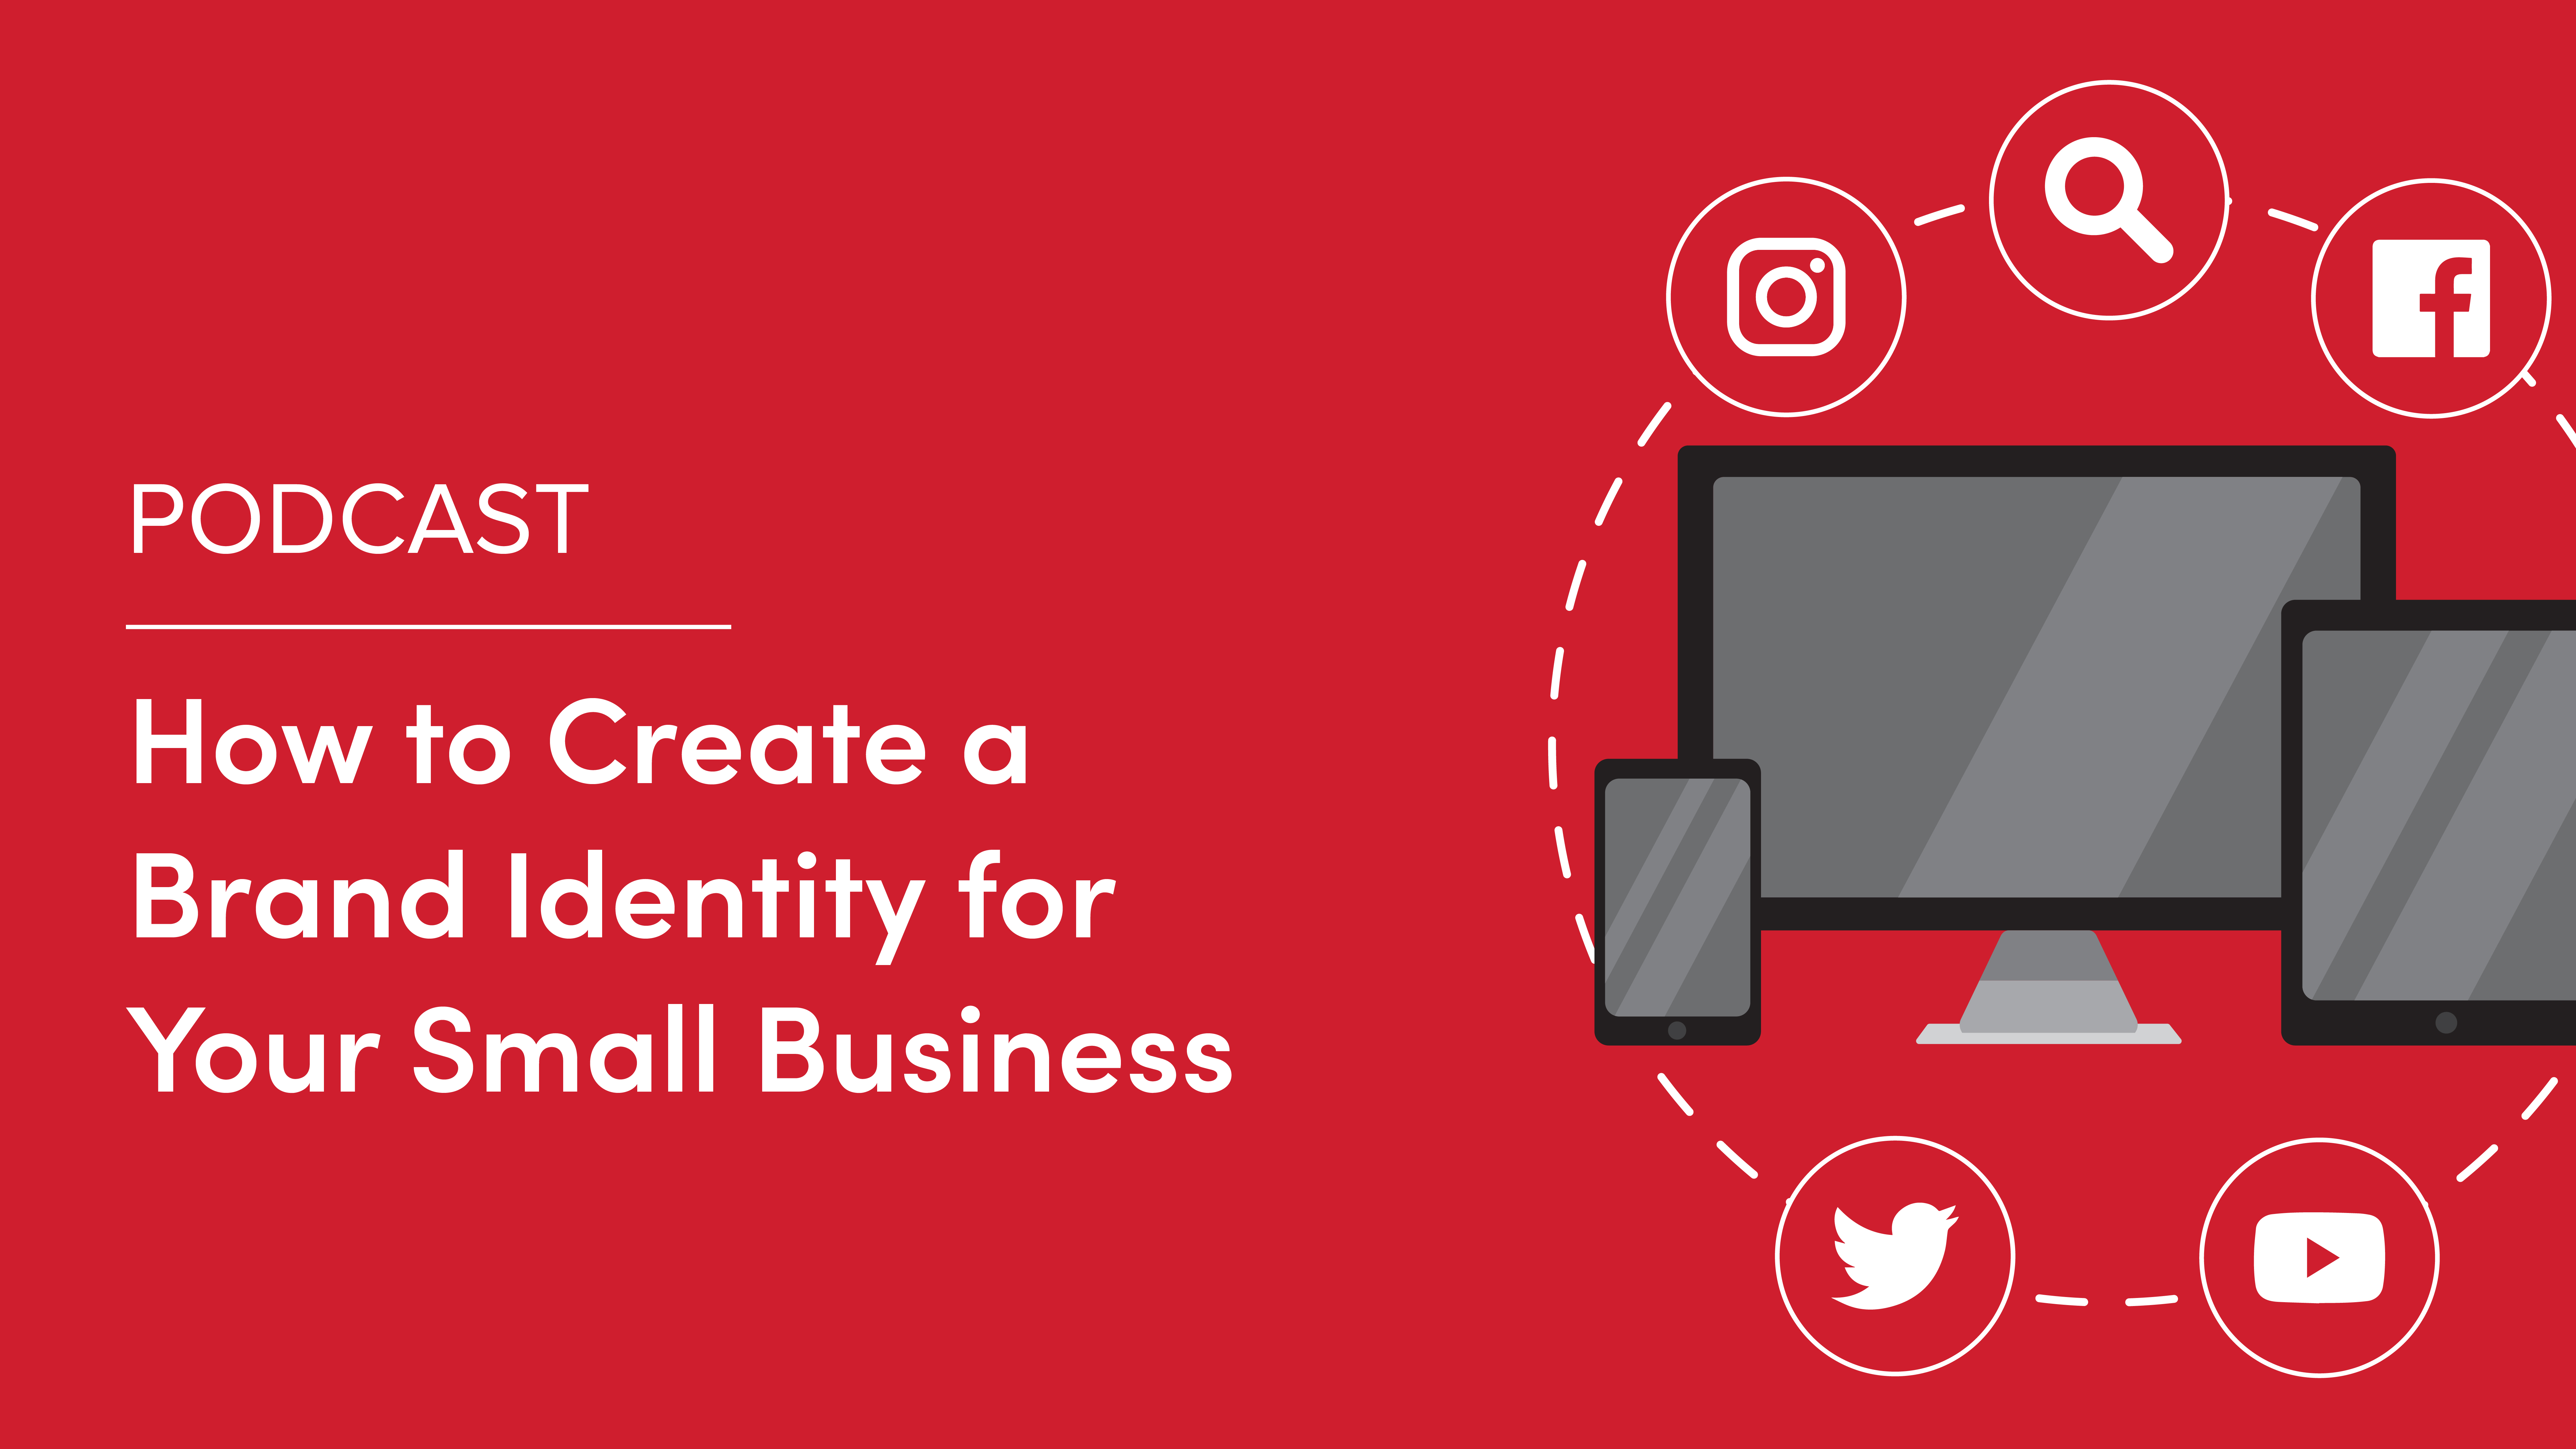 Podcast: How to Create a Brand Identity for Your Small Business